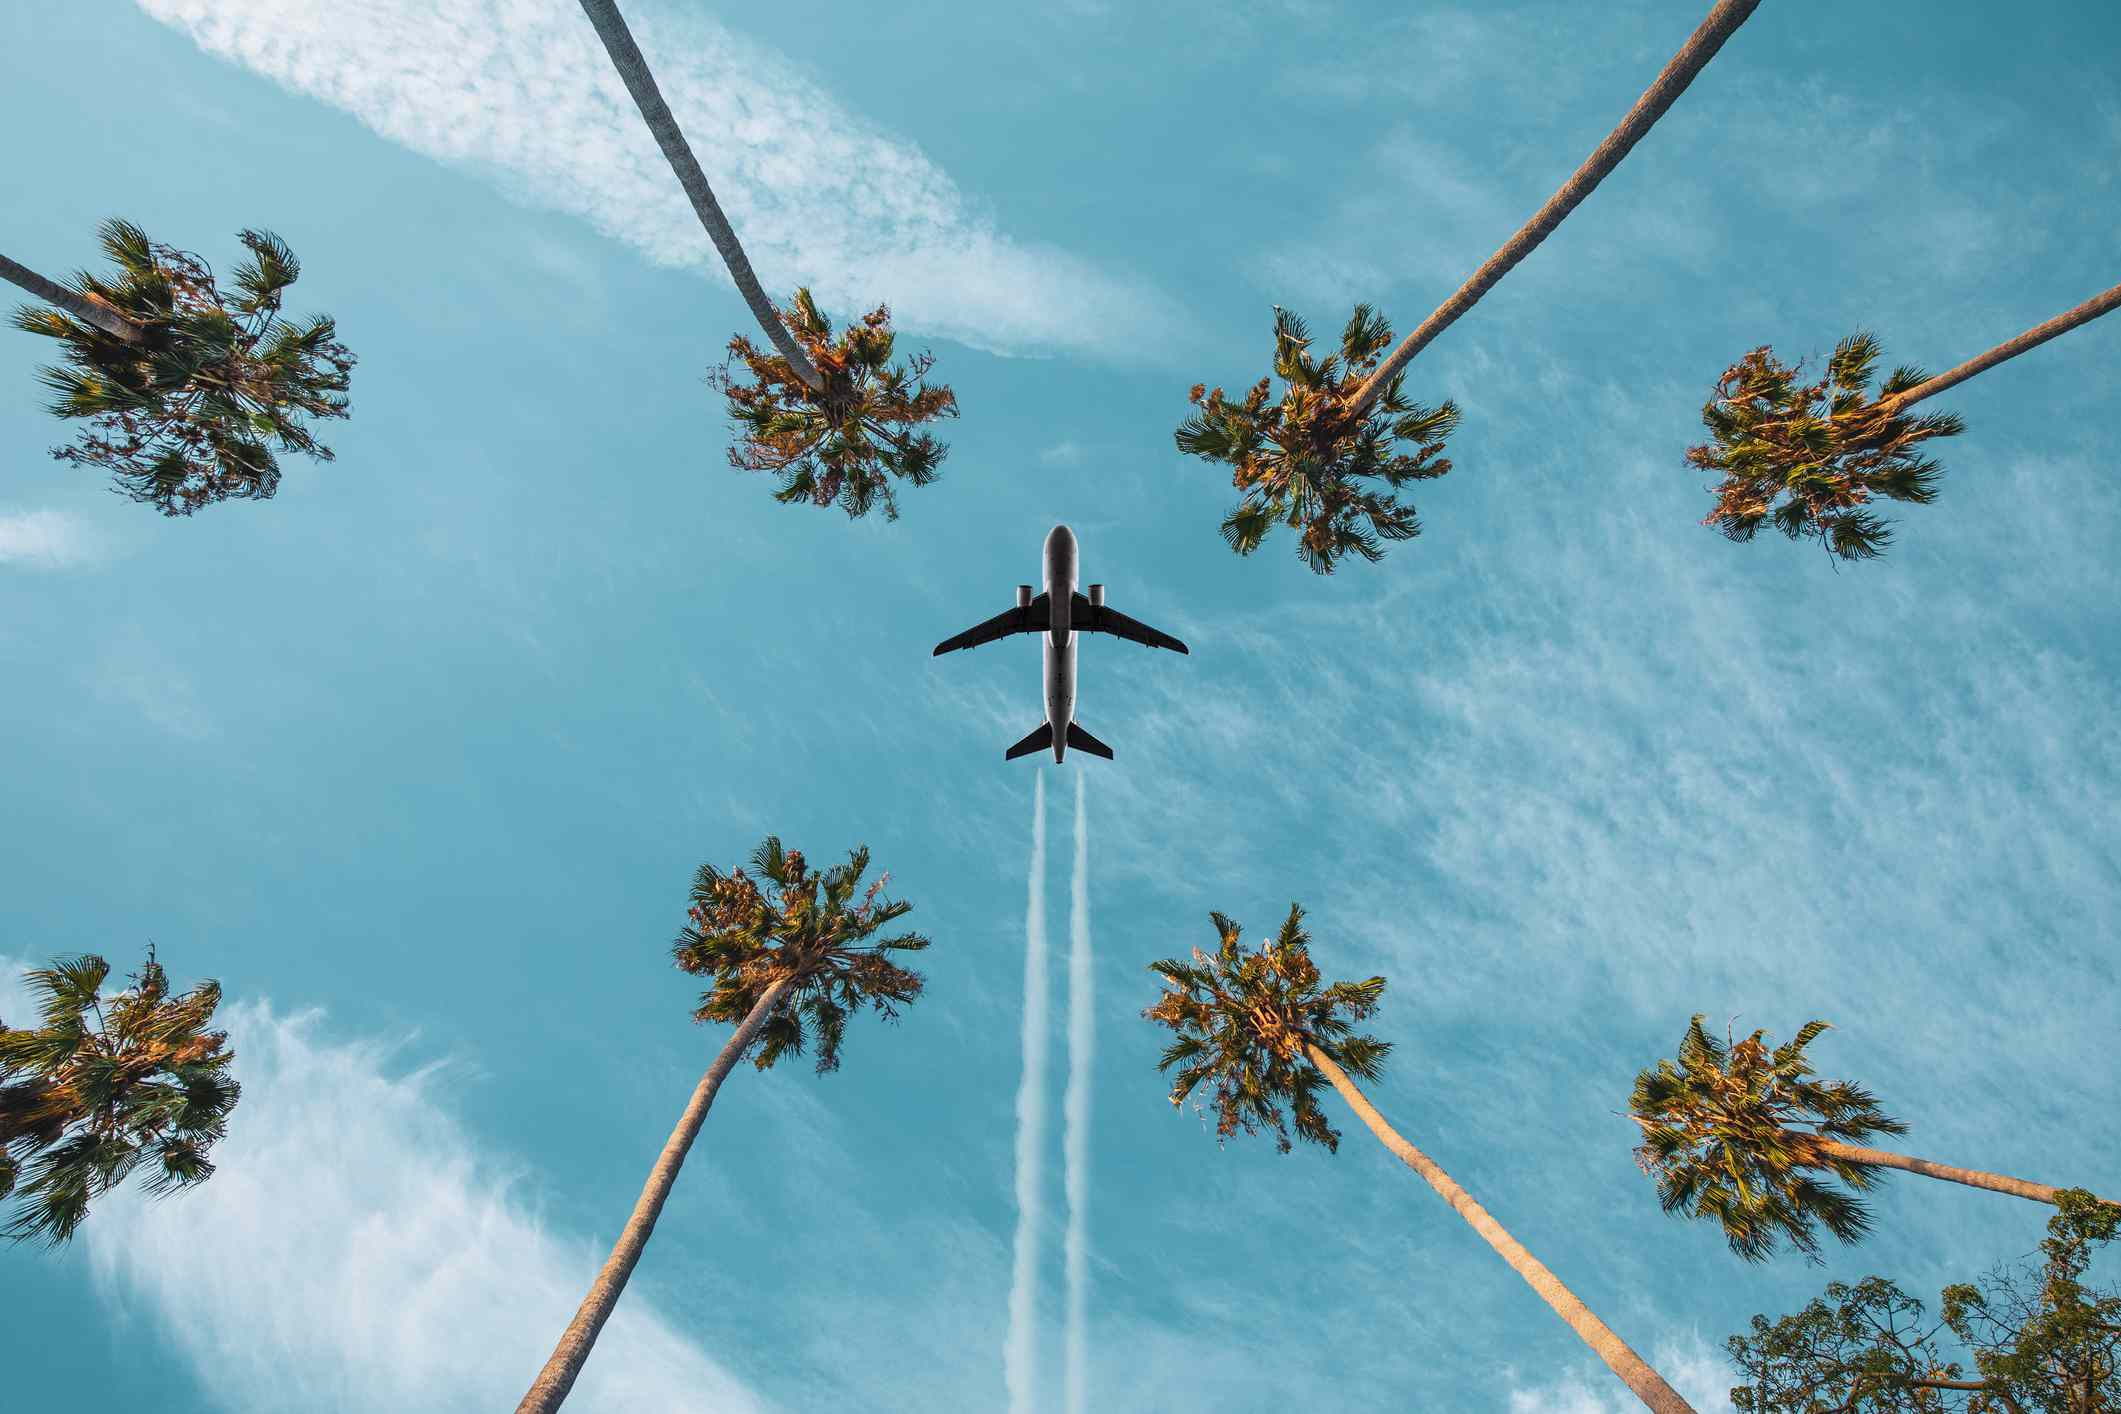 Airplane flying above palm trees, leaving vapor trails